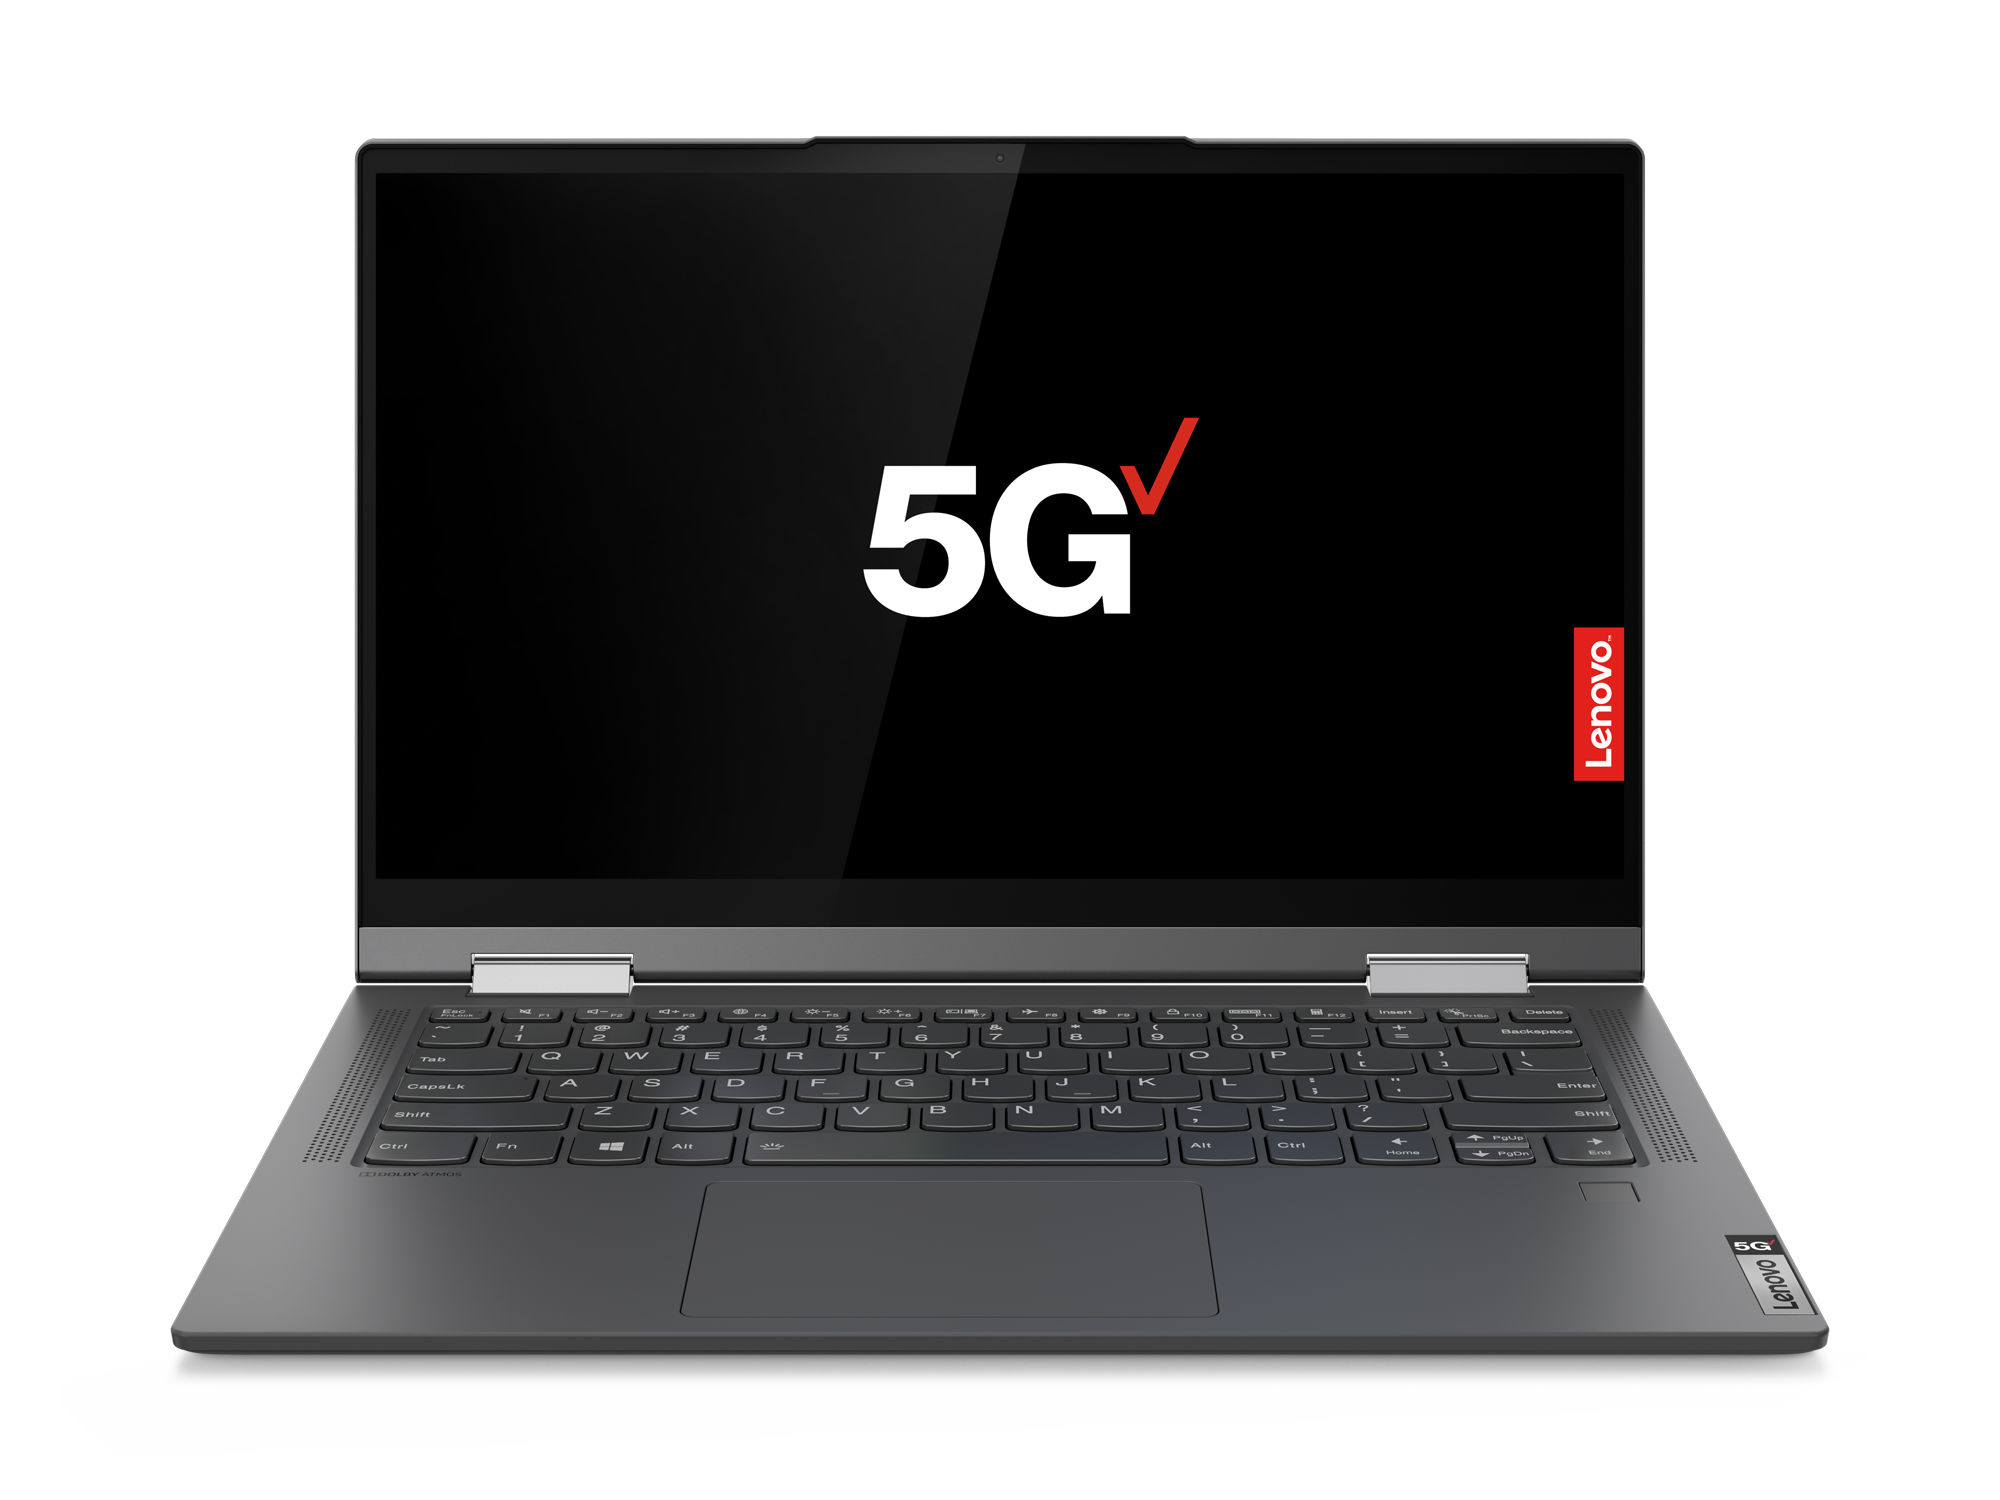 lenovo 5g laptop